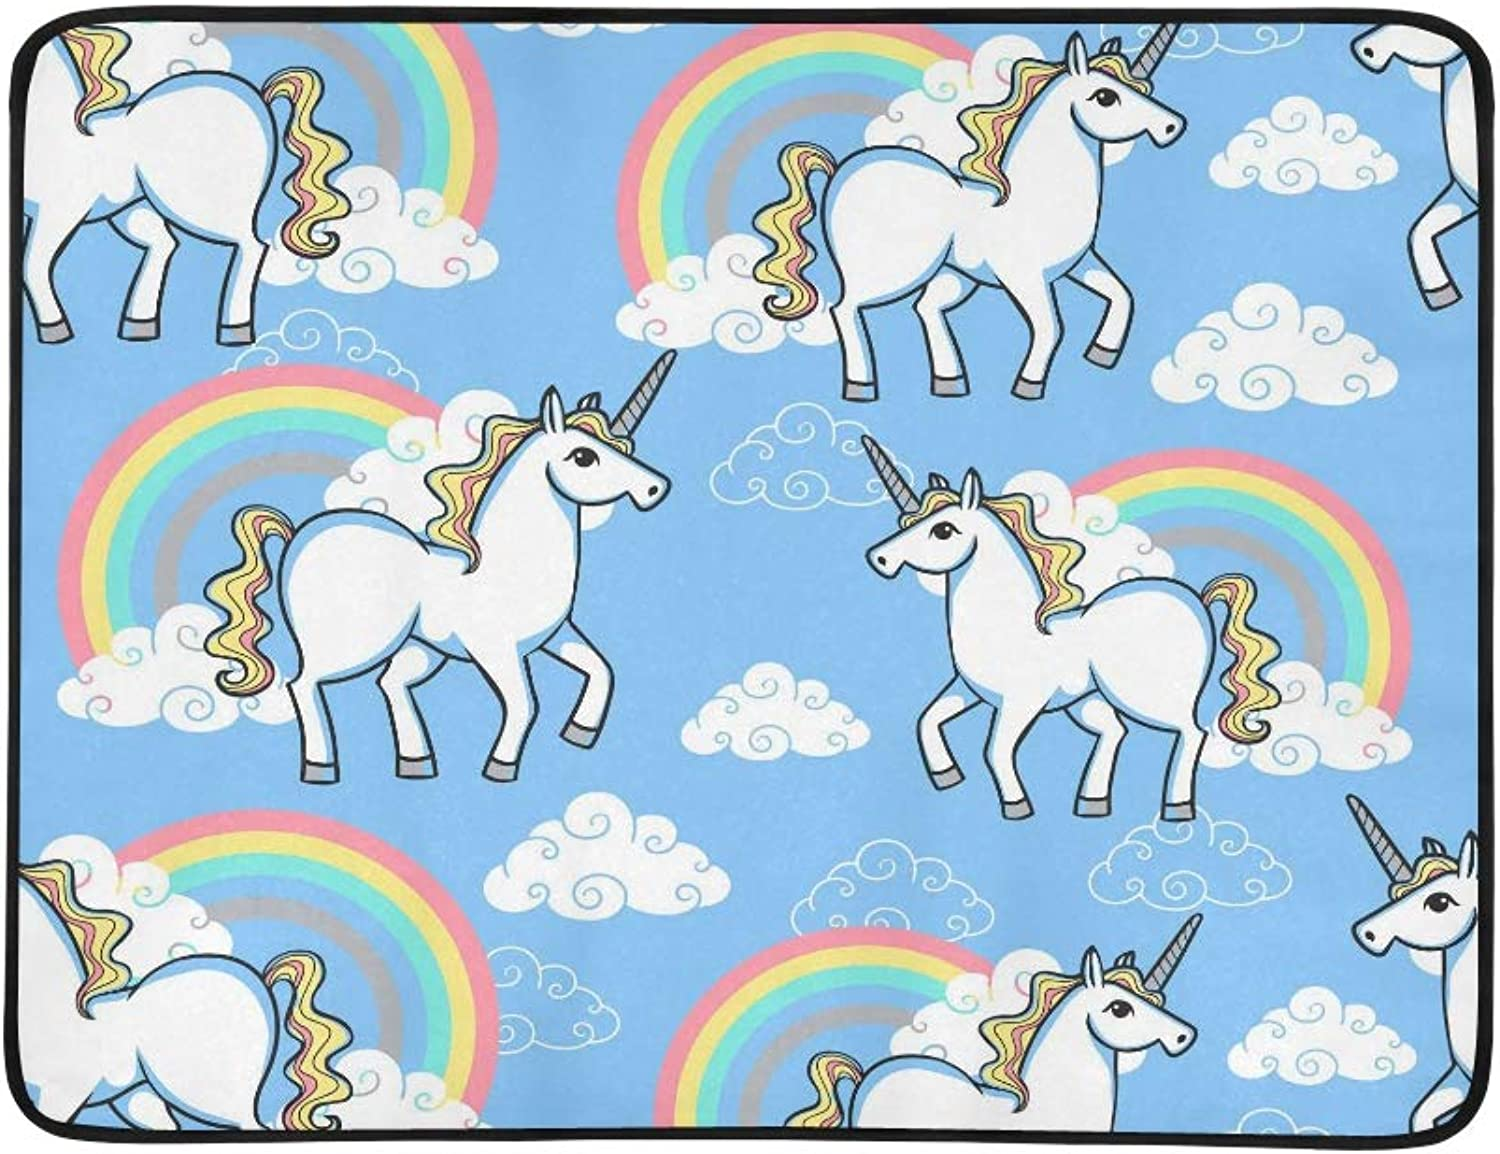 Cartoon Doodle Unicorn with Rainbow and Clouds Sea Pattern Portable and Foldable Blanket Mat 60x78 Inch Handy Mat for Camping Picnic Beach Indoor Outdoor Travel